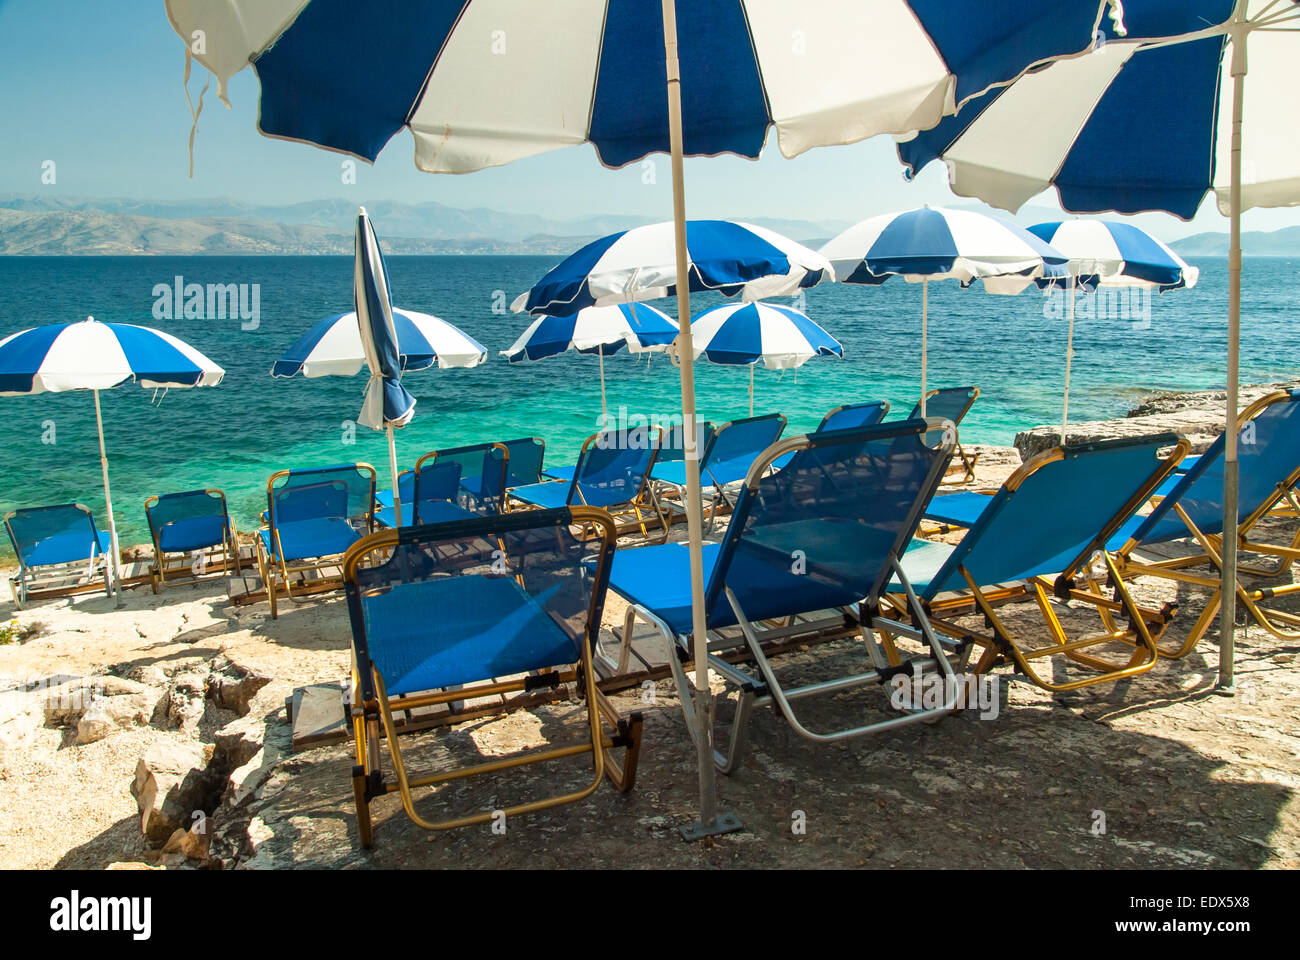 Sunbeds and umbrellas (parasols) on Kassiopi Beach, Corfu Island, Greece Stock Photo